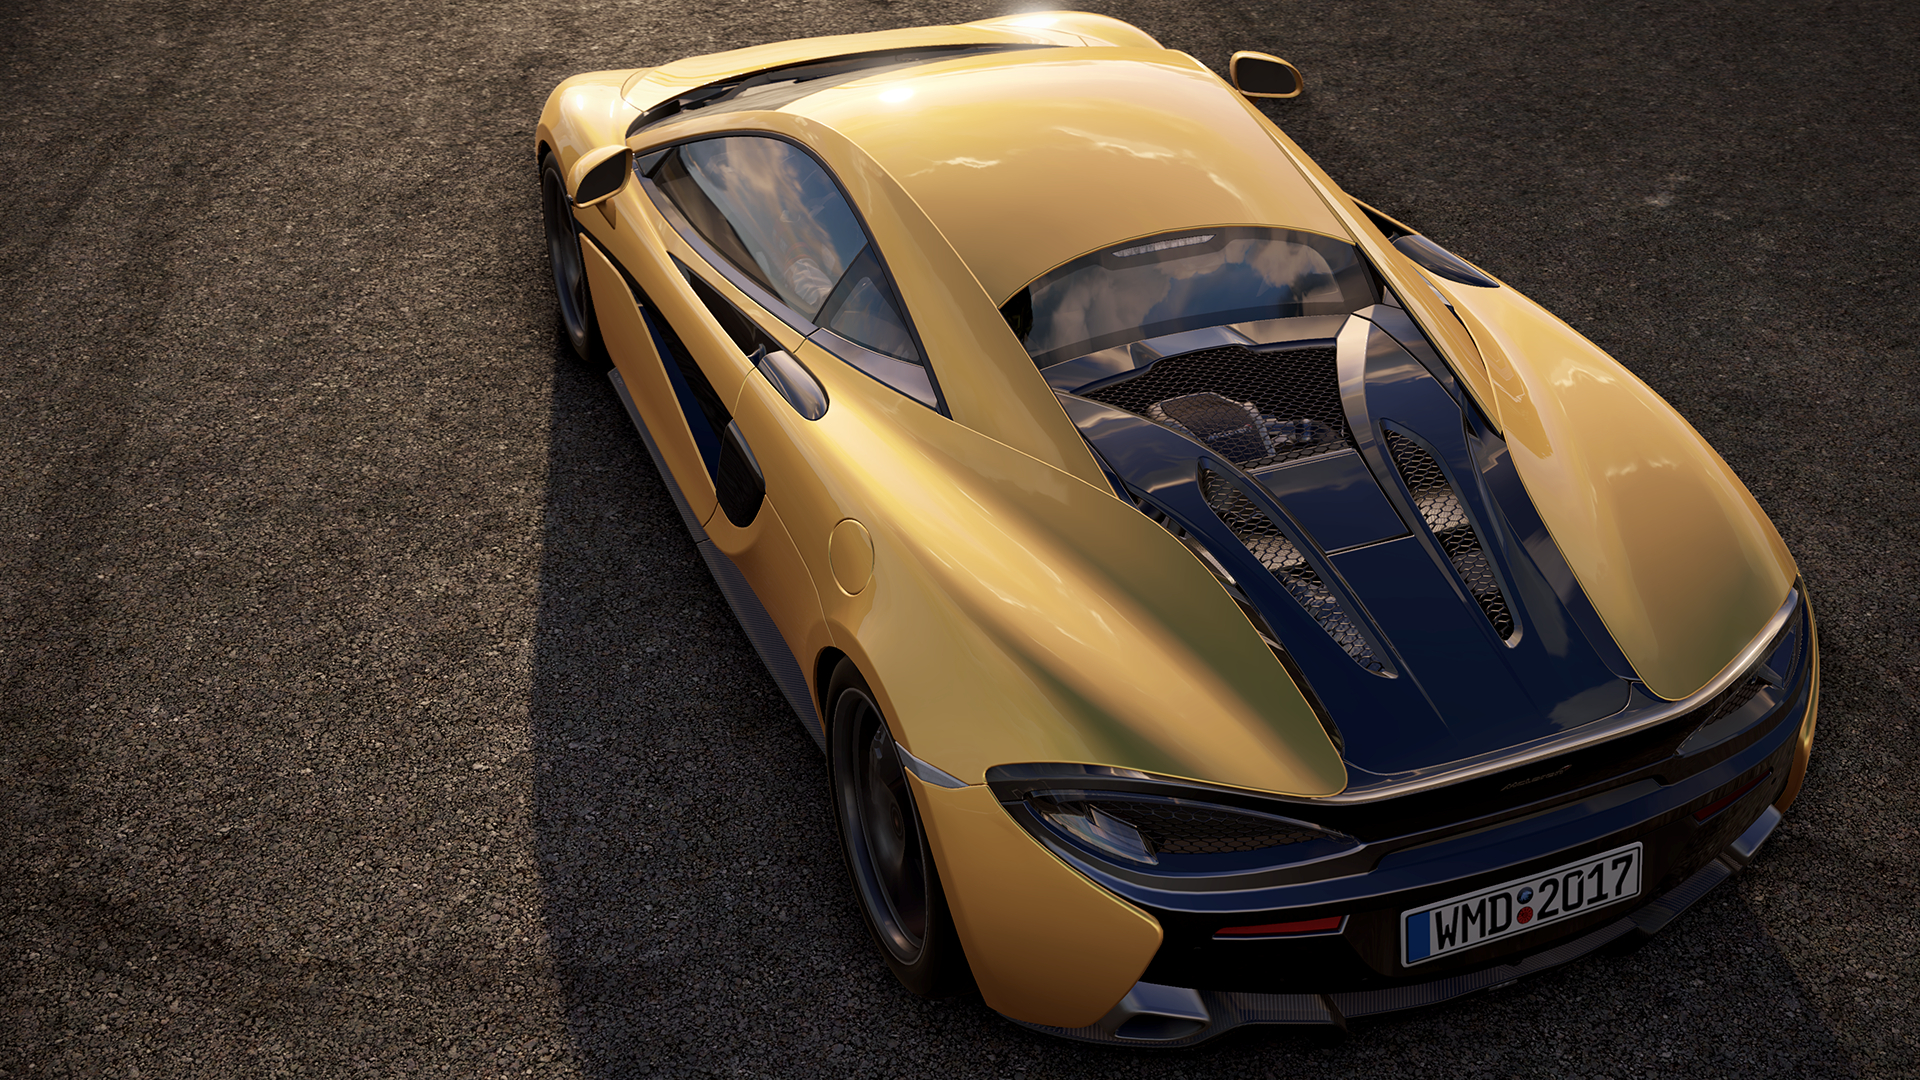 Project CARS 2 For PS4 XB1 PC Reviews